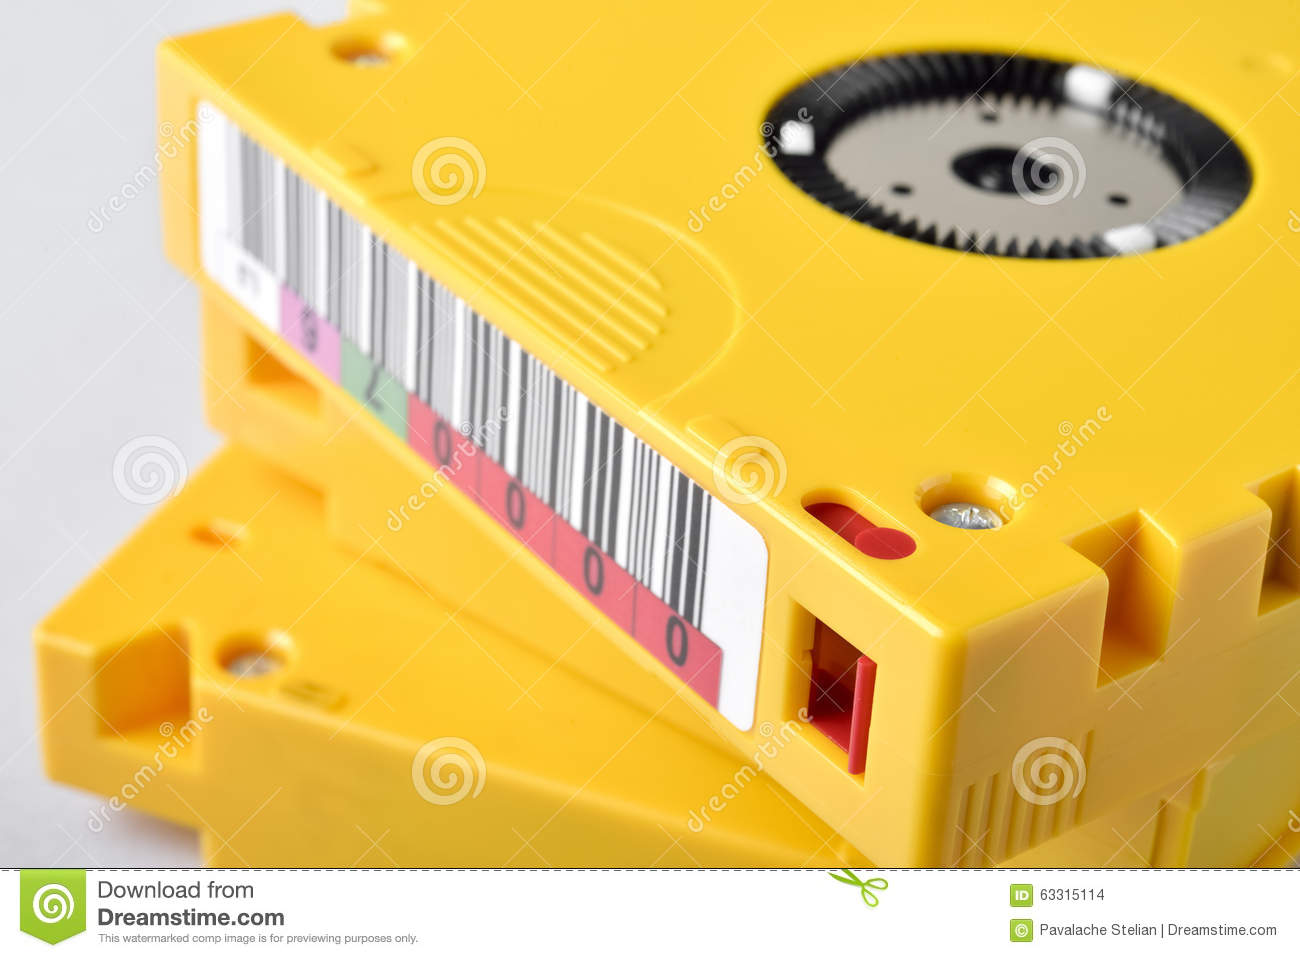 magnetic tape data storage and master A magnetic tape, in computer terminology, is a storage medium that allows for data archiving, collection, and backup at first, the tapes were wound in wheel-like reels, but then cassettes and .